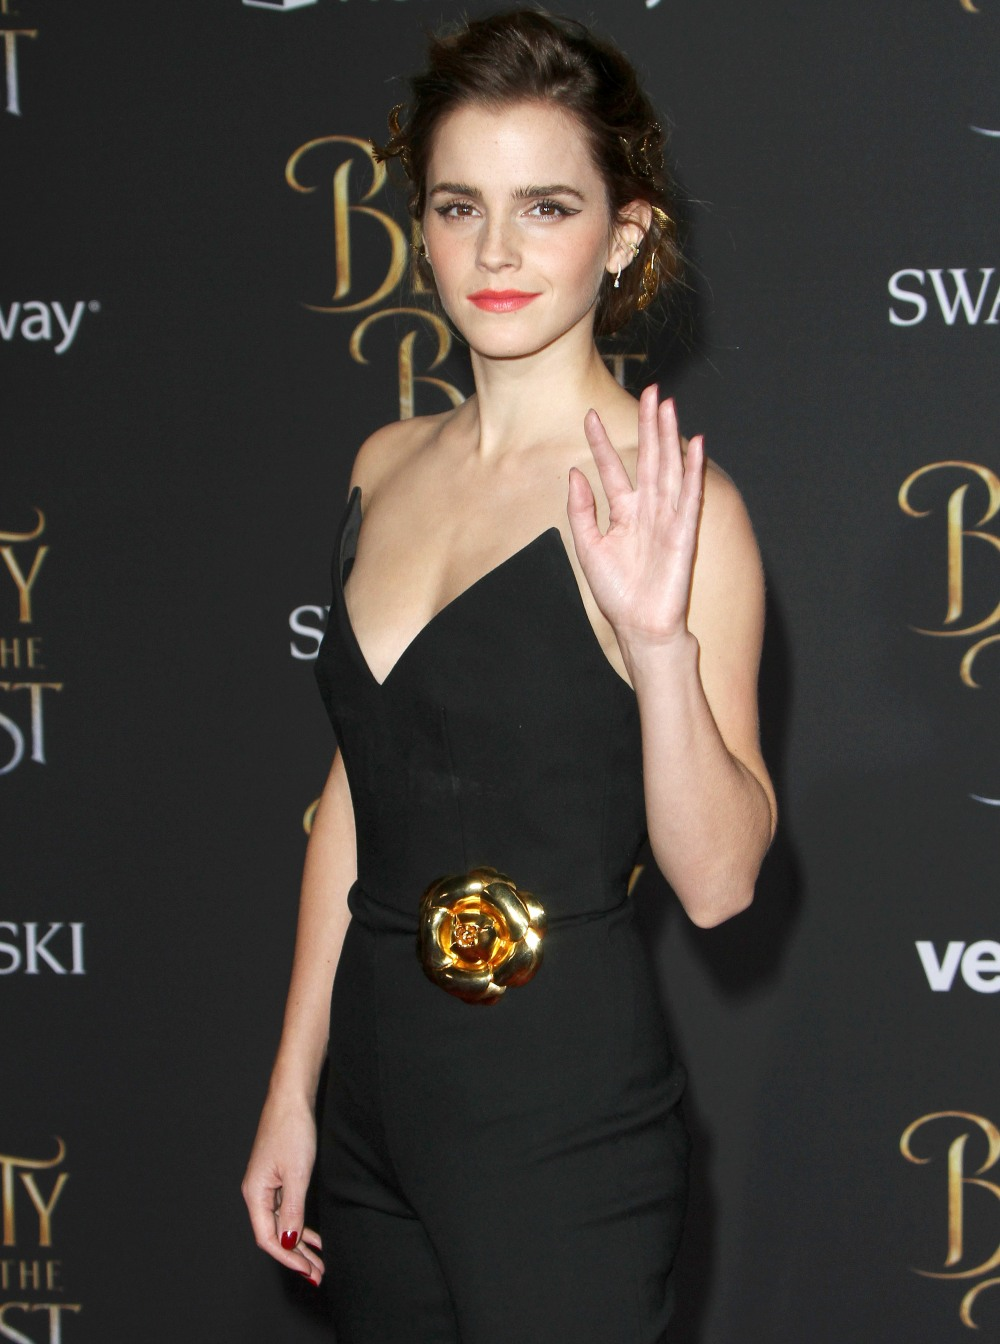 Emma Watson at The Beauty And The Beast Premiere in Hollywood